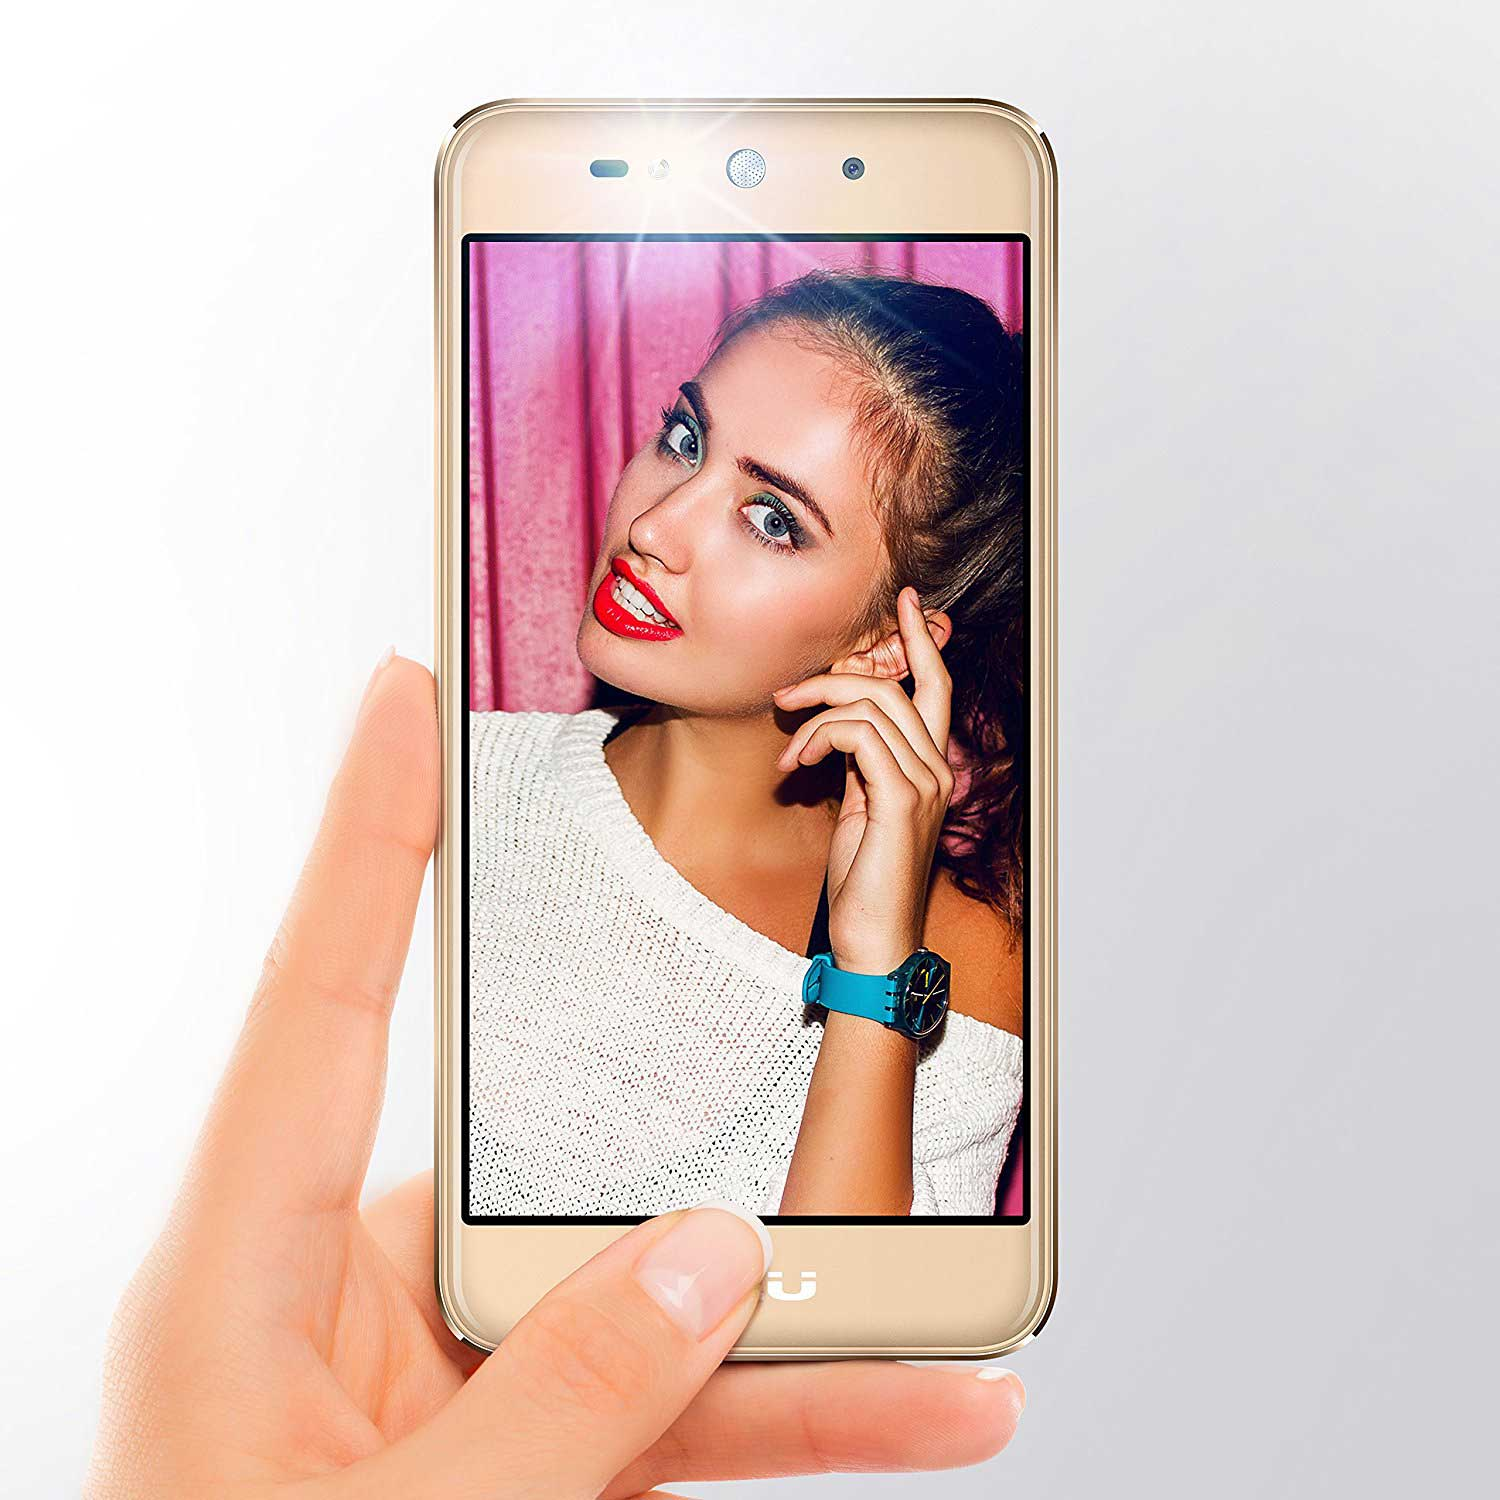 Blu Studio Selfie 3 price in canada